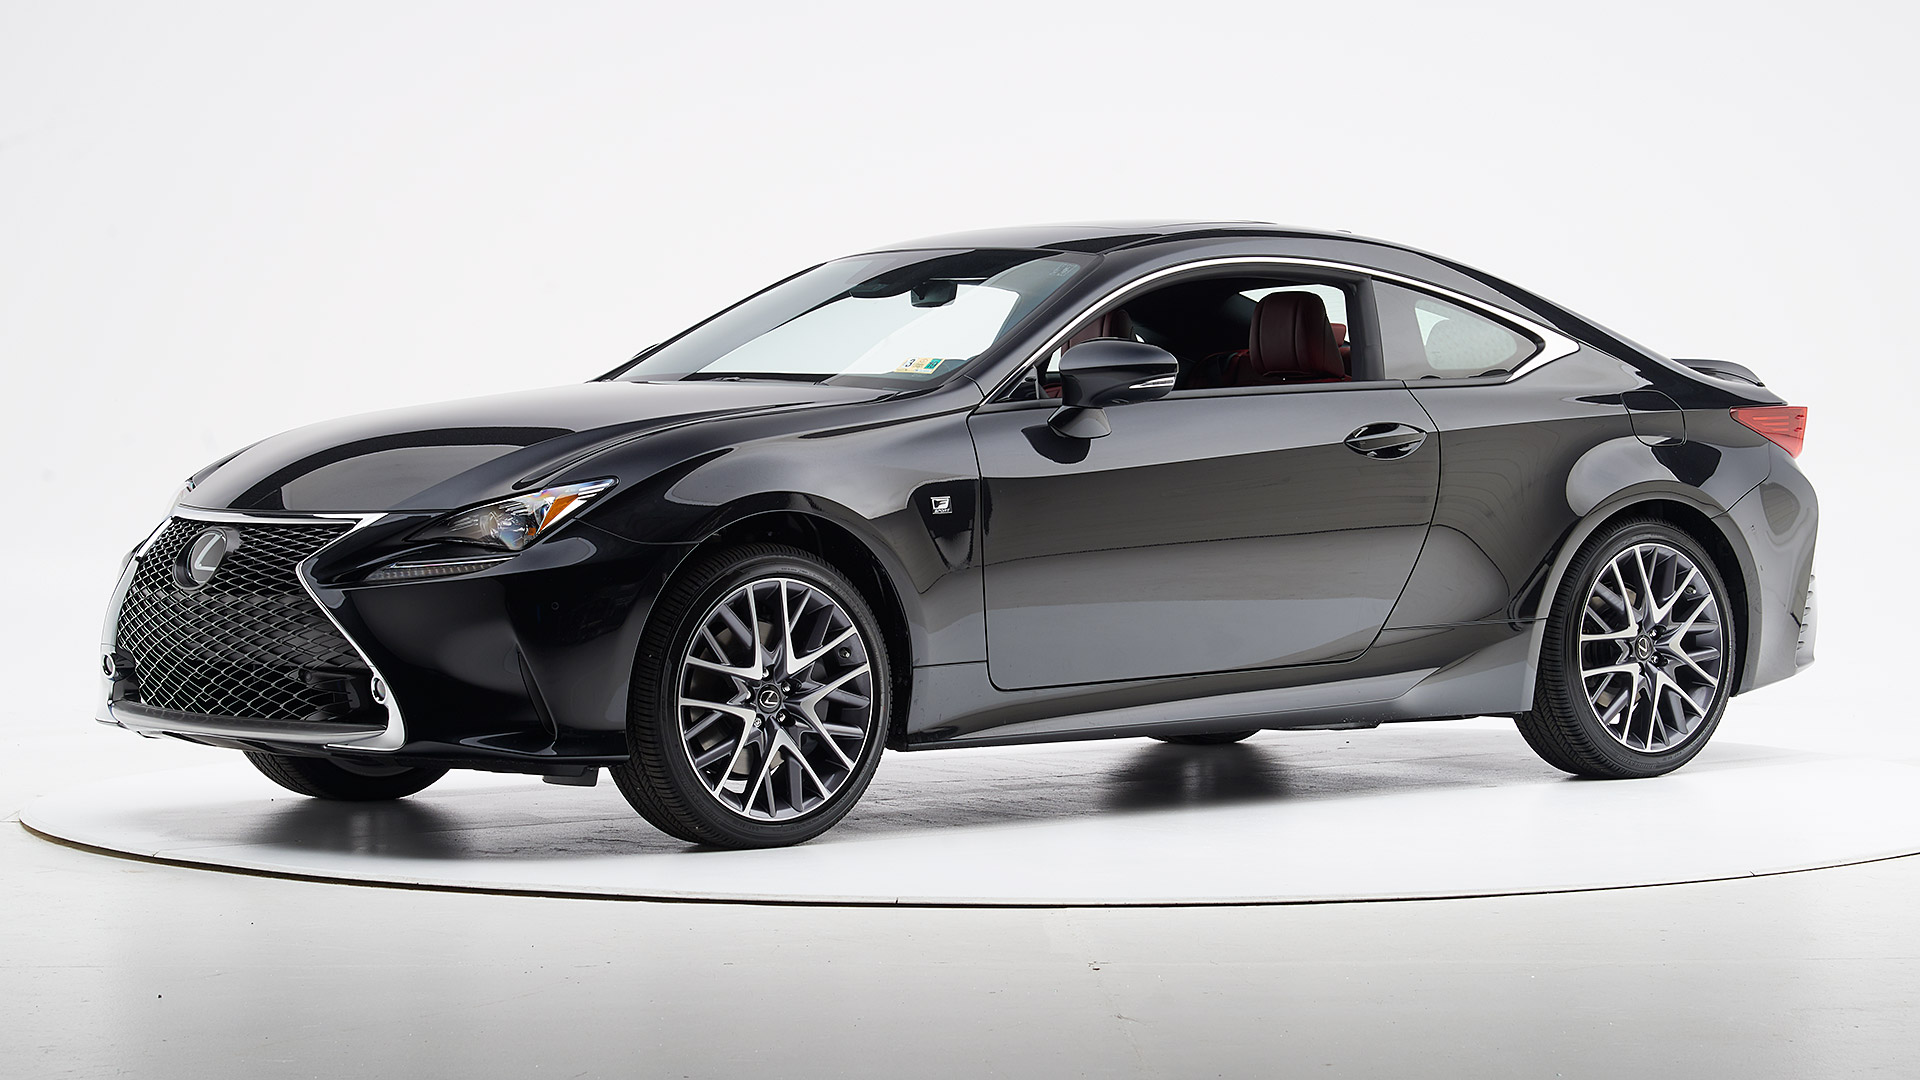 2018 Lexus RC 2-door coupe